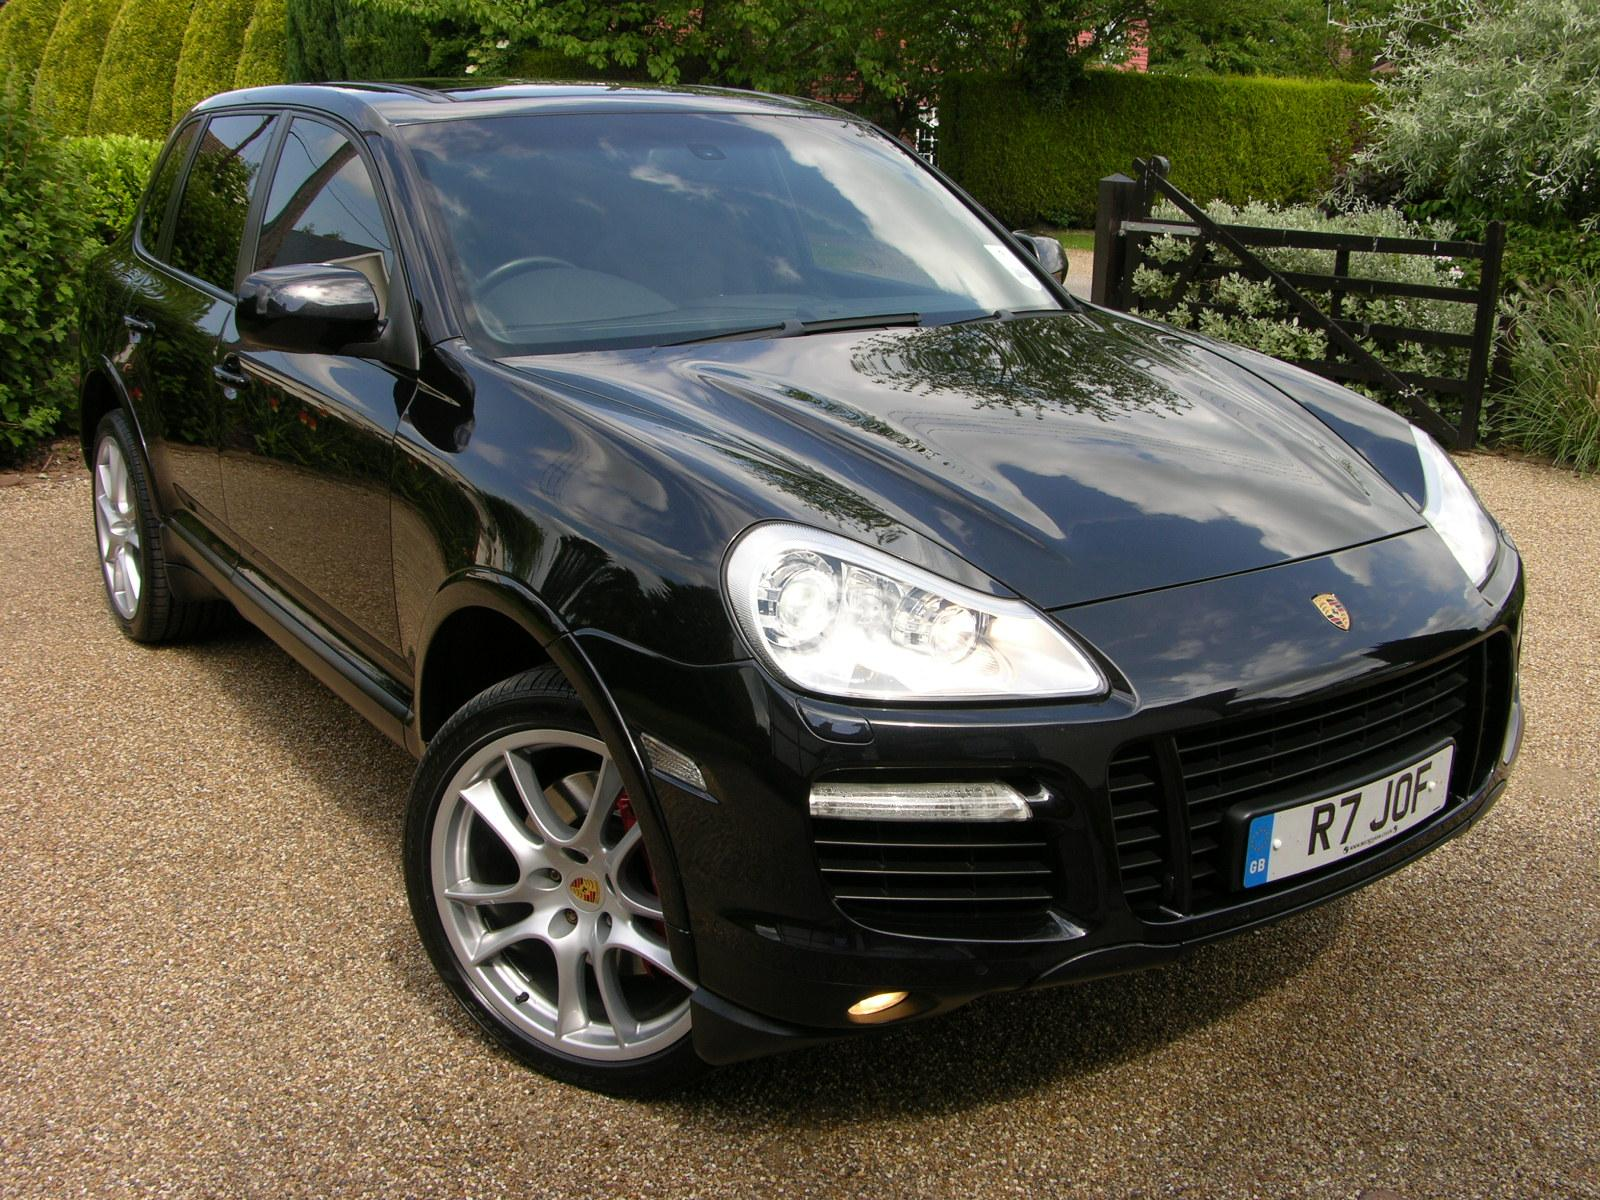 file 2007 porsche cayenne turbo flickr the car spy 23 jpg. Black Bedroom Furniture Sets. Home Design Ideas